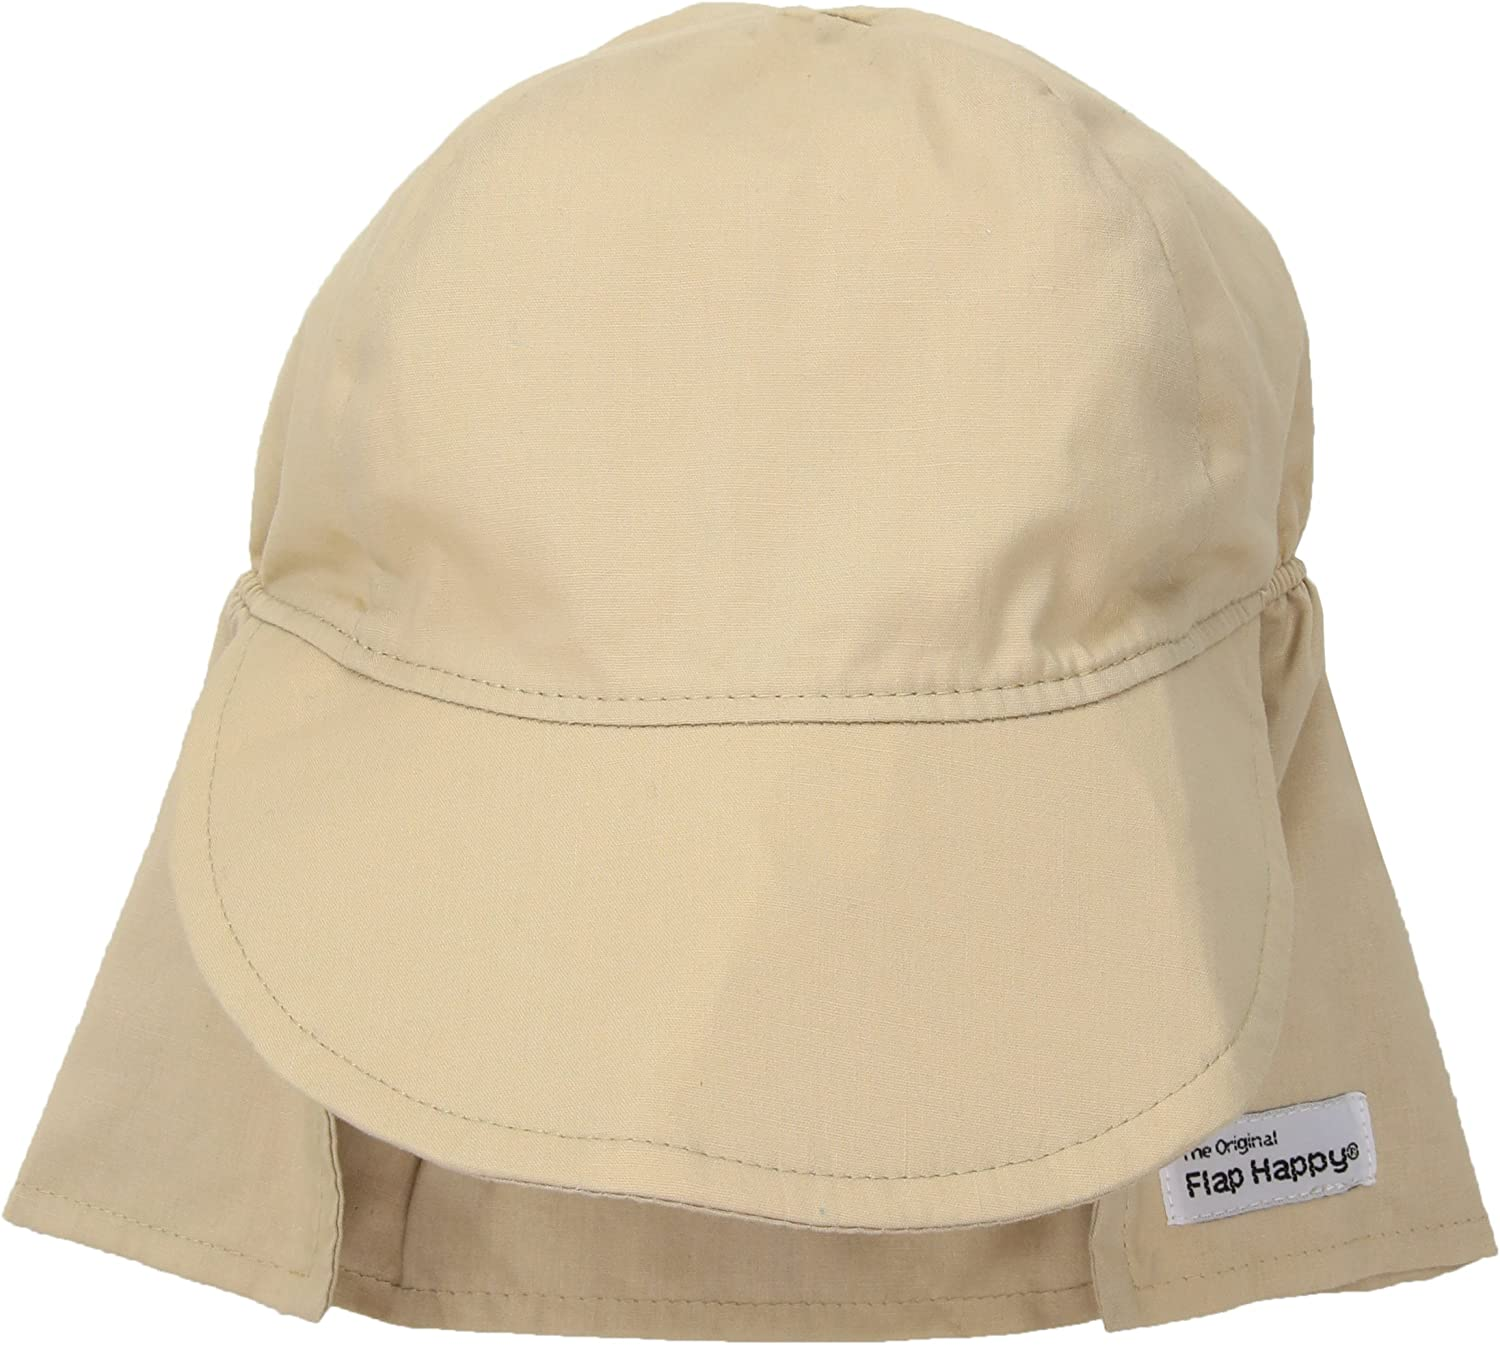 Outstanding Flap Happy Baby UPF Large 50+ Khaki Hat Ranking TOP1